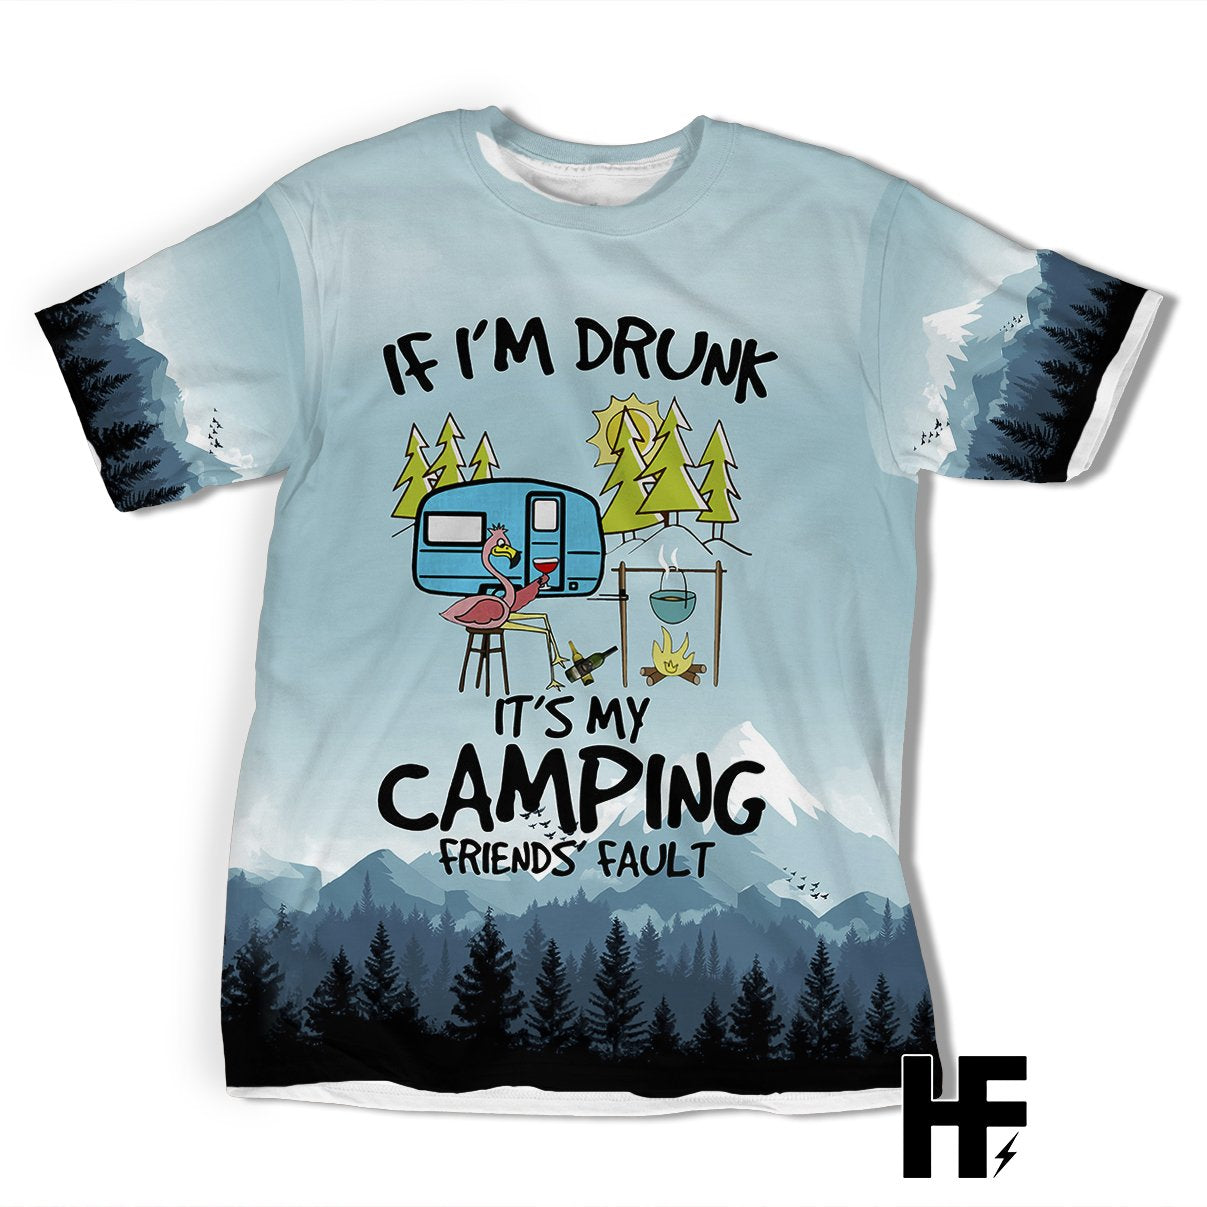 Flamingo It's My Camping Friends' Fault EZ03 1703 All Over T-shirt